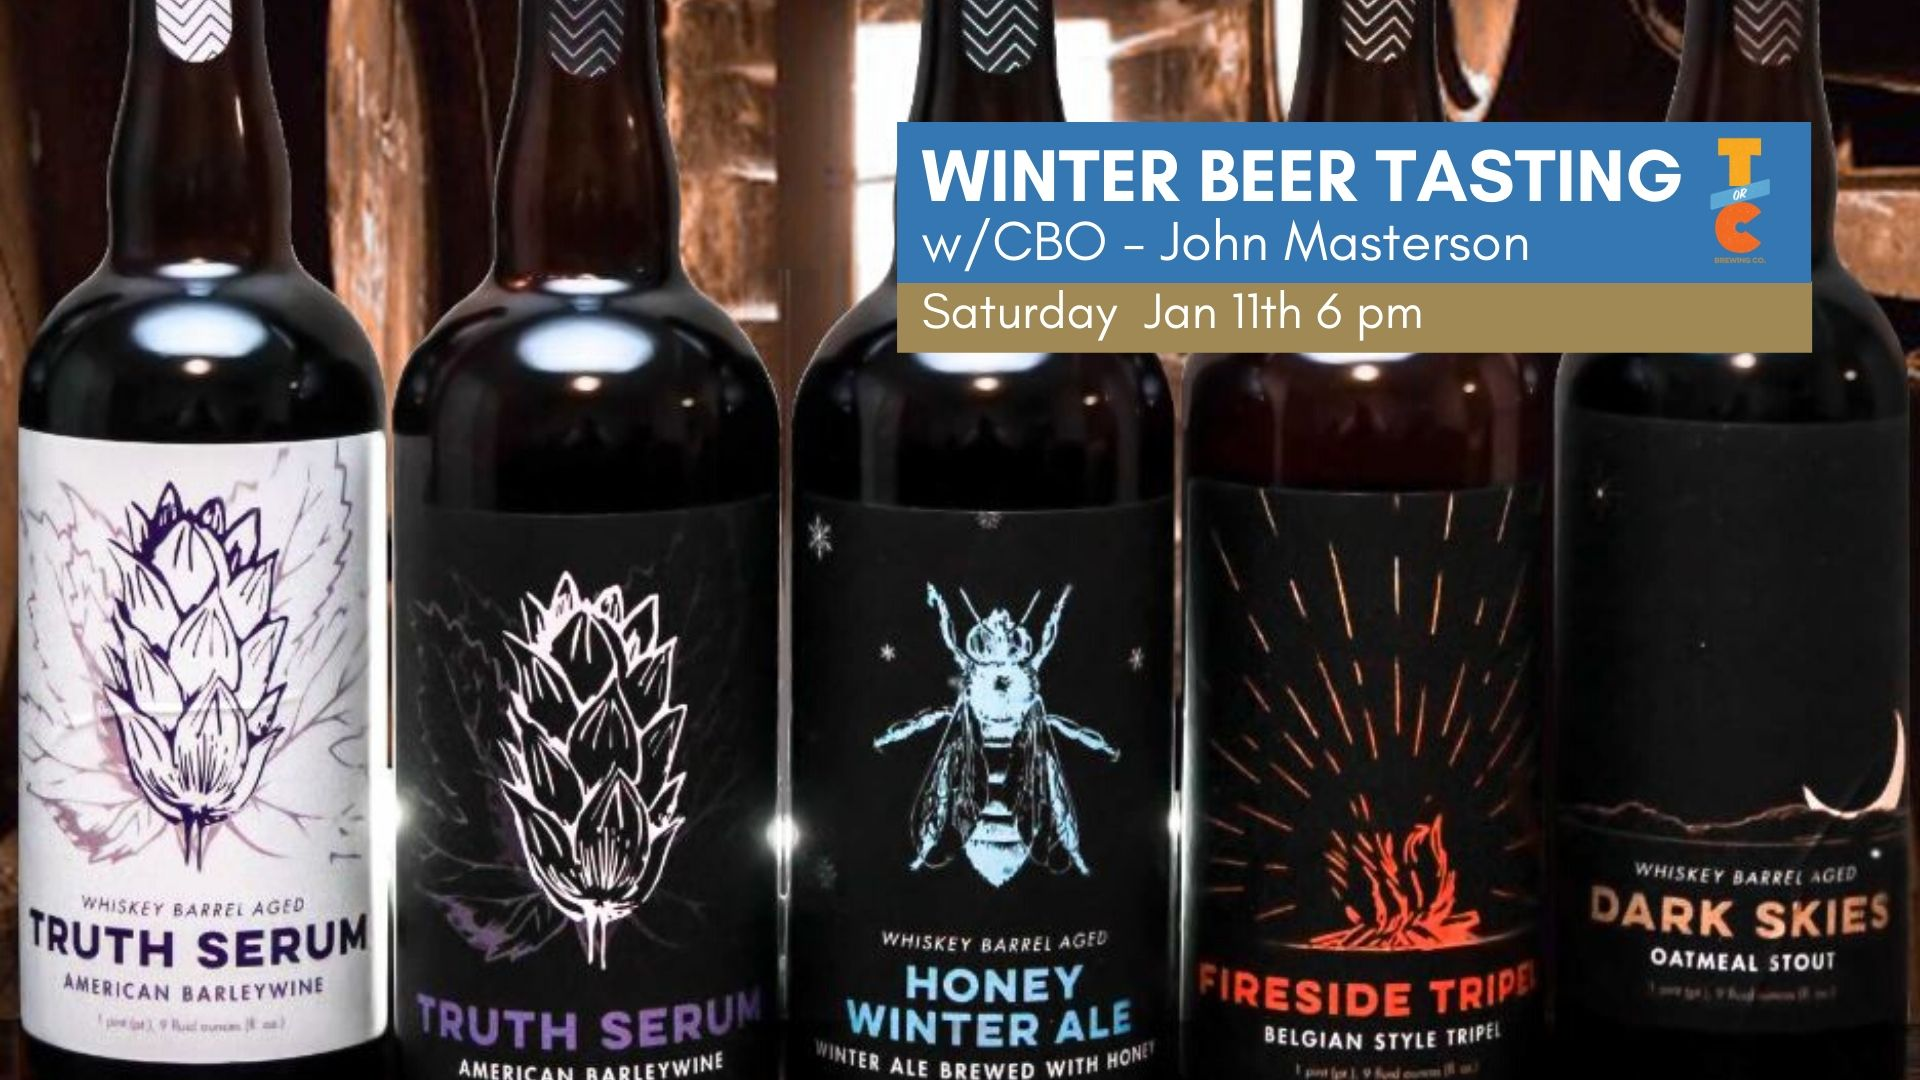 Winter Beer Tasting